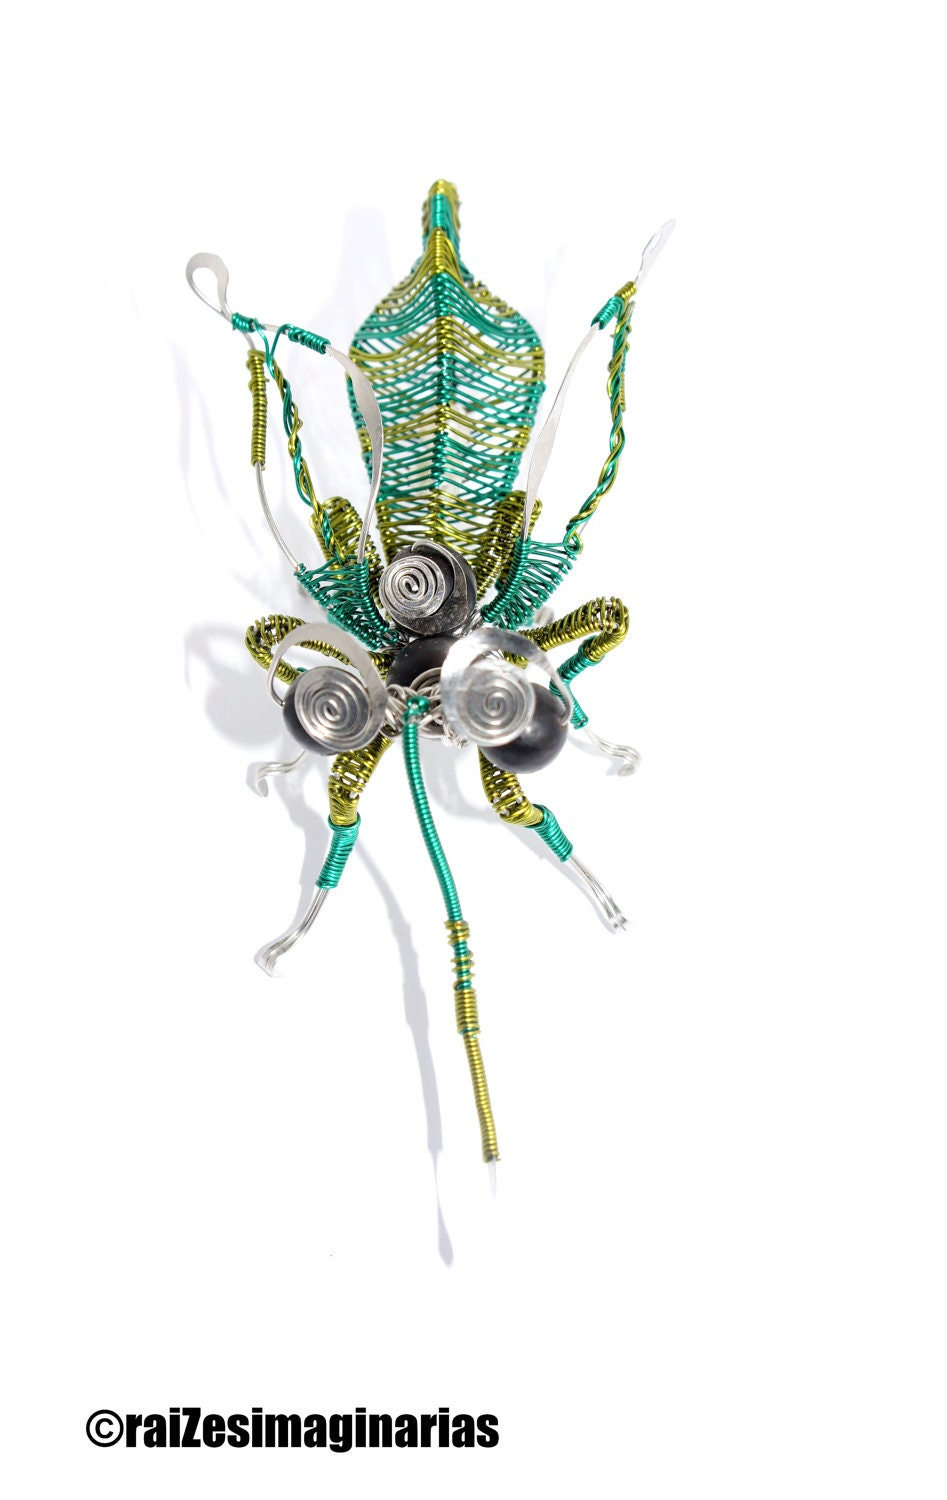 fly wire wrap sculpture stainless steel, green colored copper wire and natural pearls - raizesimaginarias